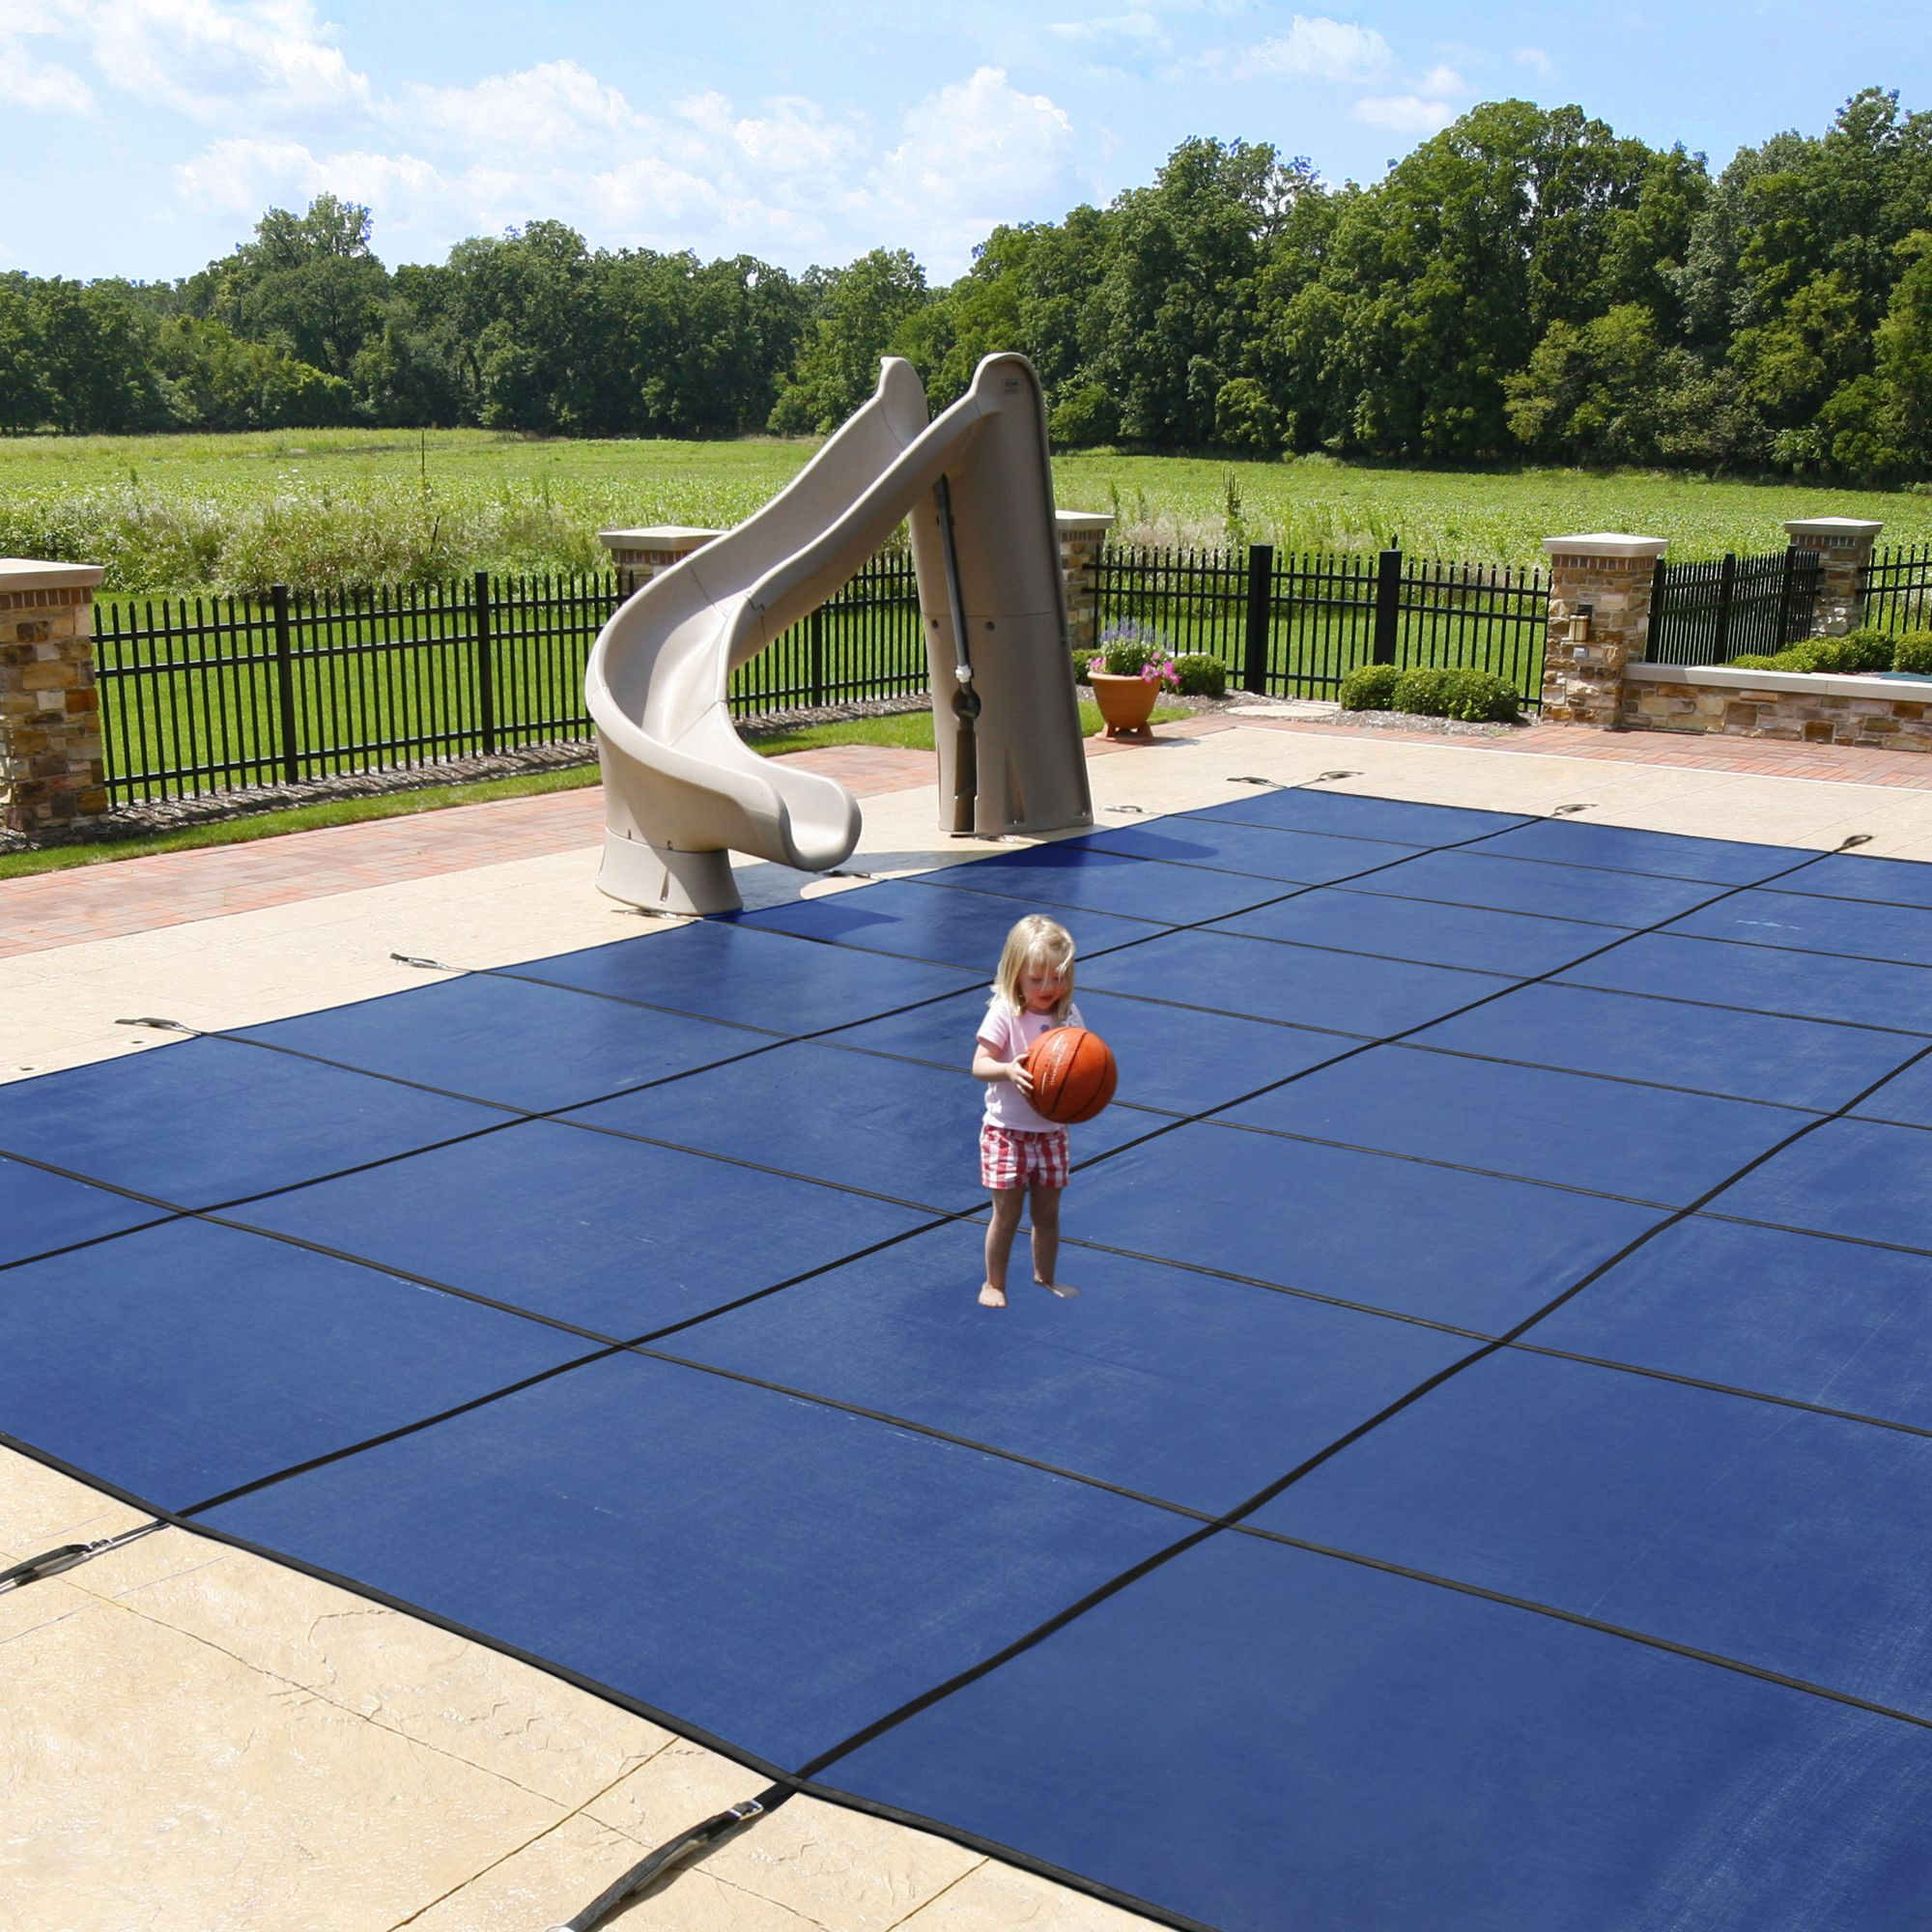 Toys in 2020 Pool safety covers, In ground pools, Safety